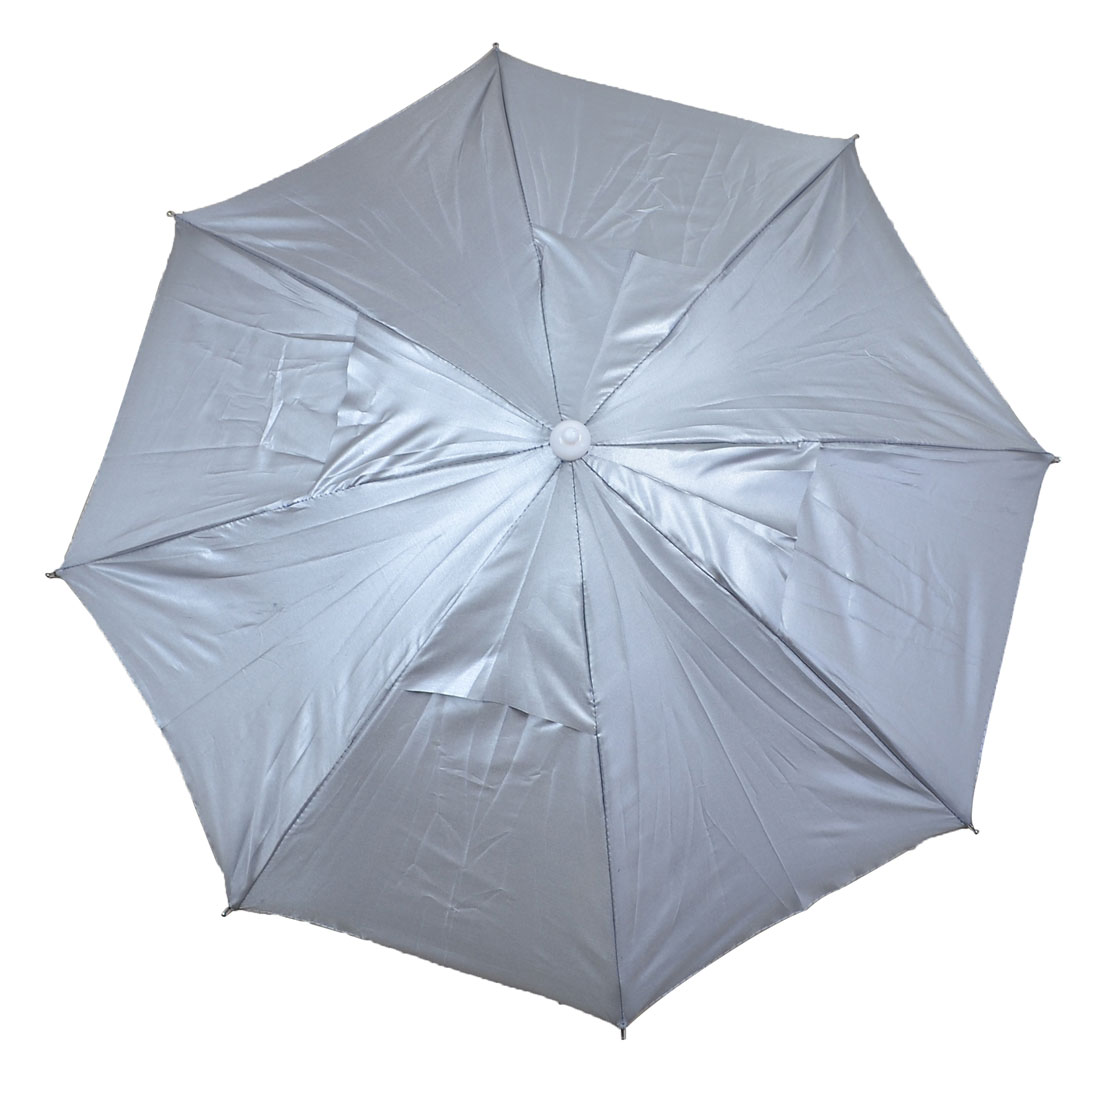 Outdoor Metal Frame Hands Free Foldable Fishing Umbrella Hat Silver Tone